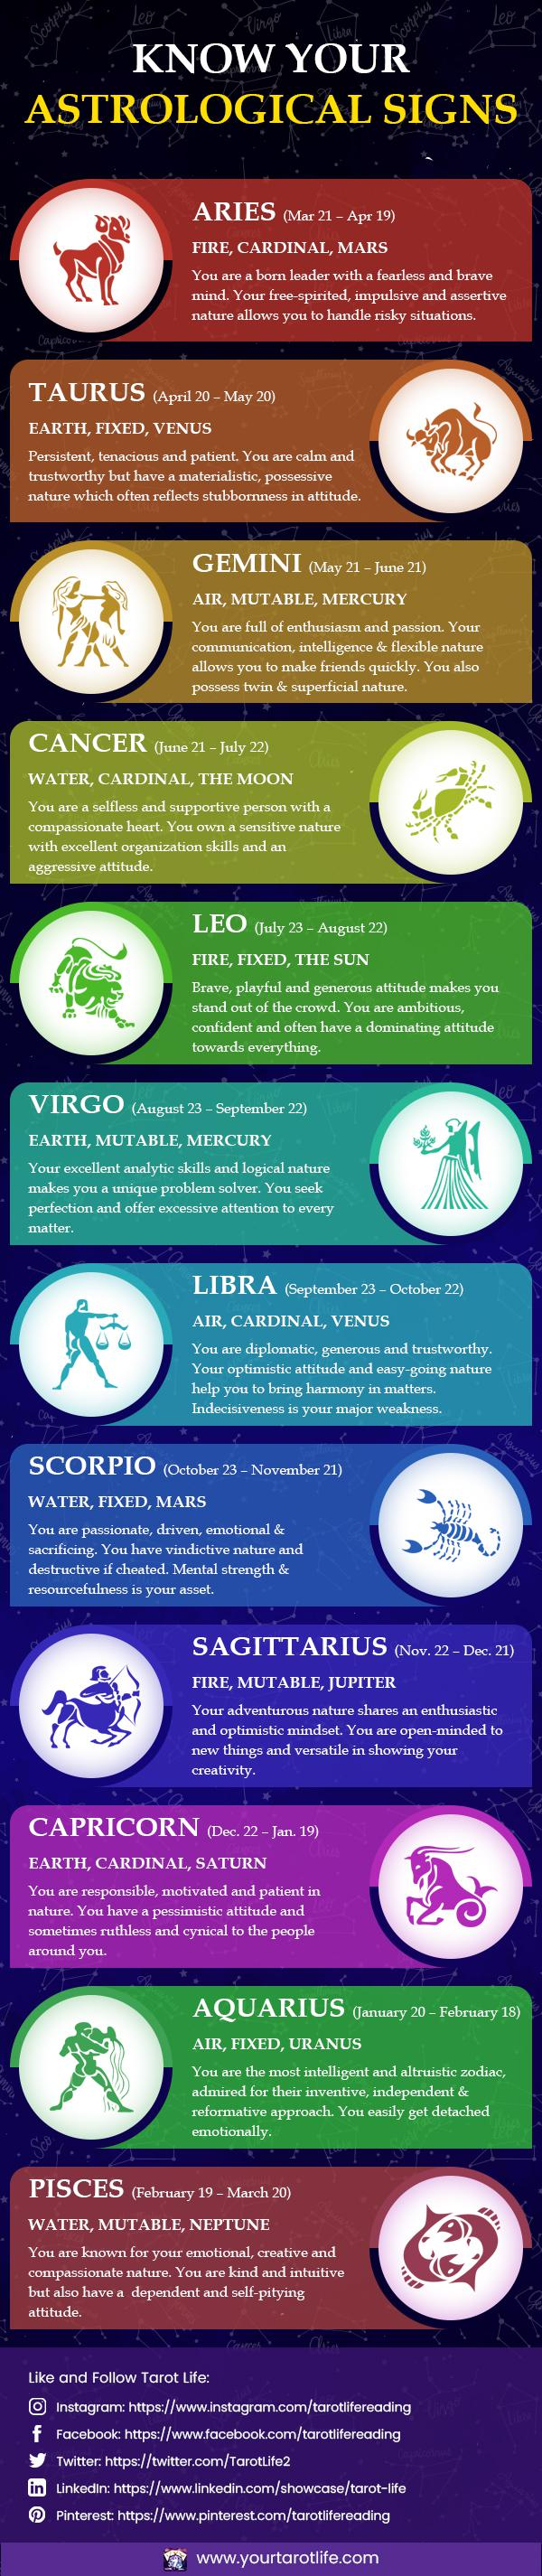 Know-Your-Zodiac-Signs